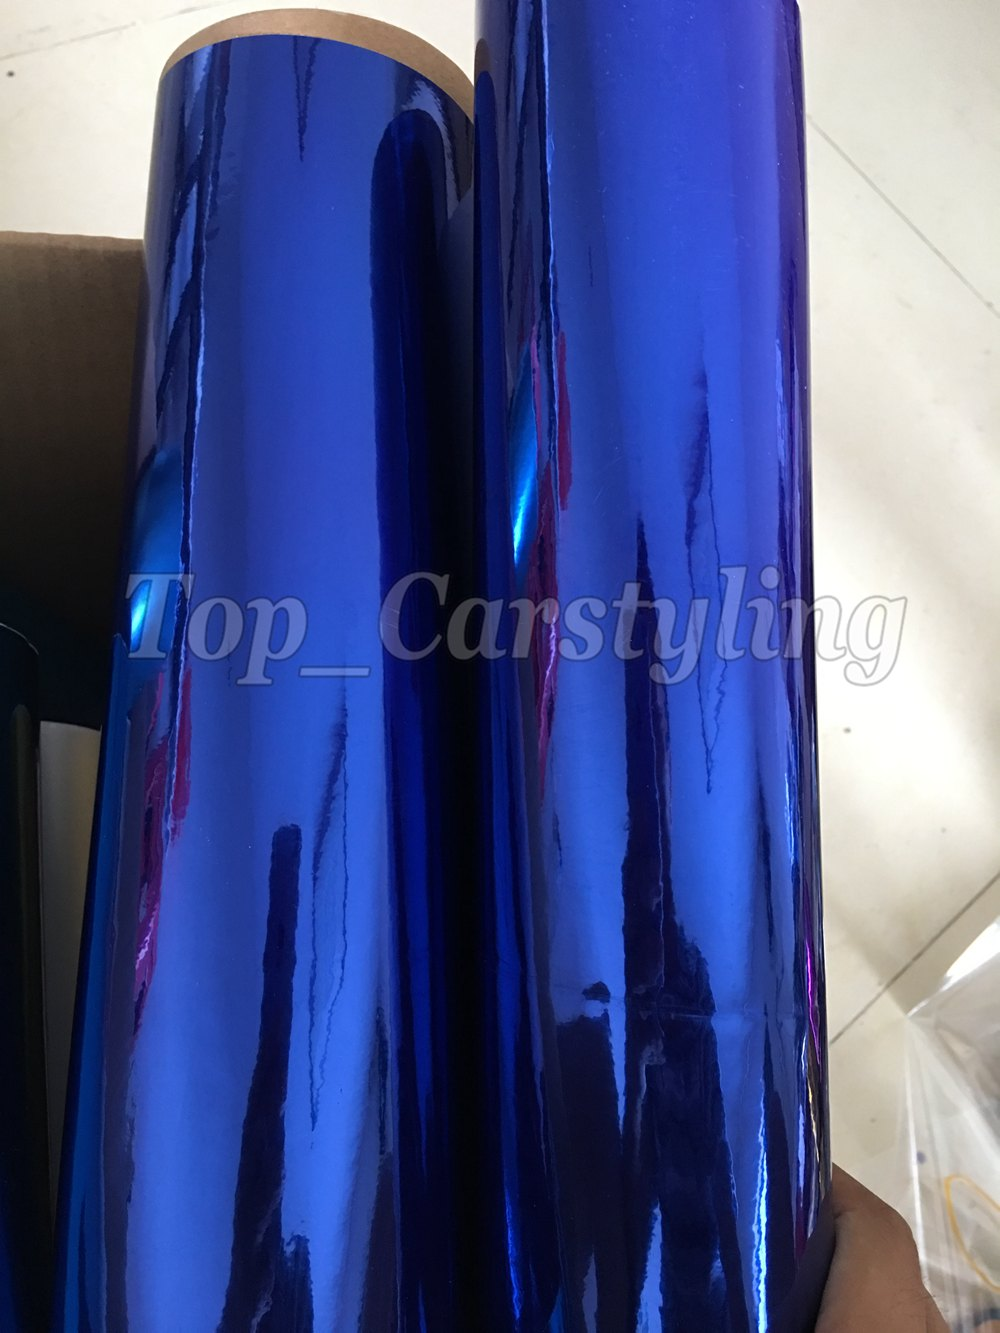 chrome blue mirror stm hexis car wrapping film high stretchable flexible (7)